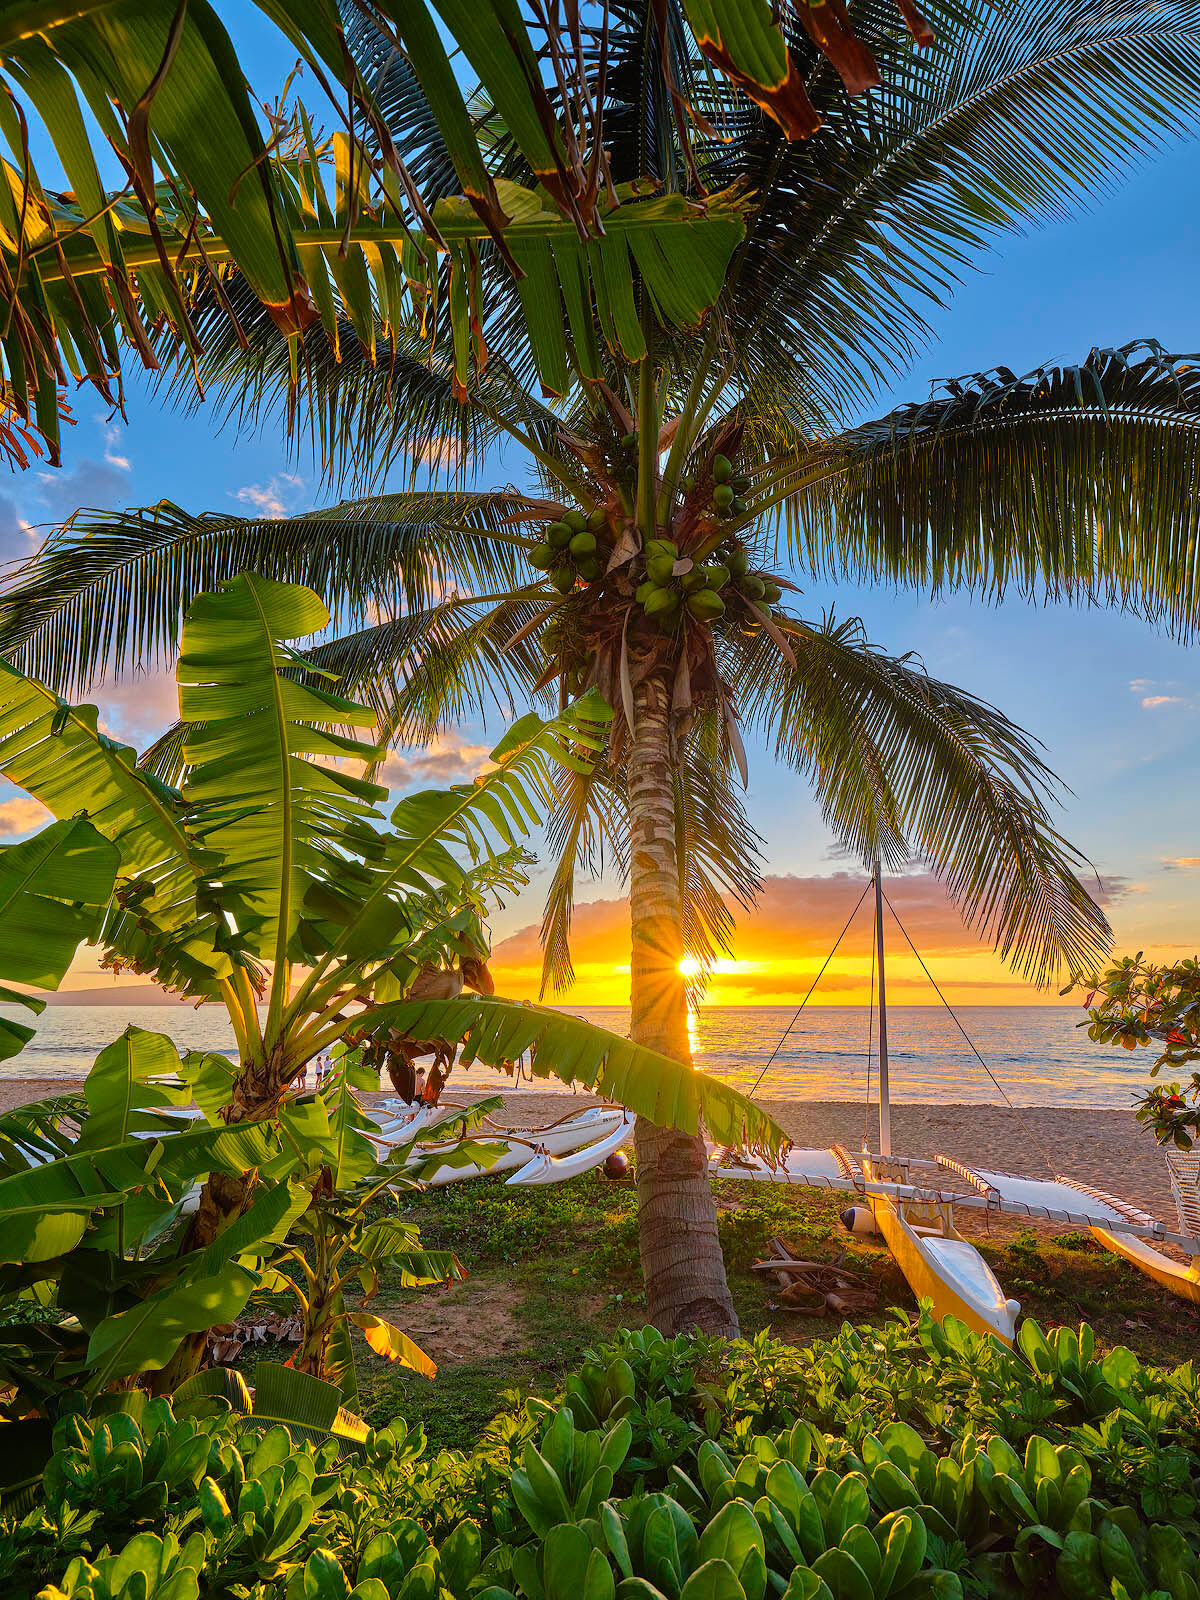 a beautiful sunset scene at Polo Beach in Wailea featuring a coconut palm tree, an outrigger and a sun star.  Photographed by Andrew Shoemaker